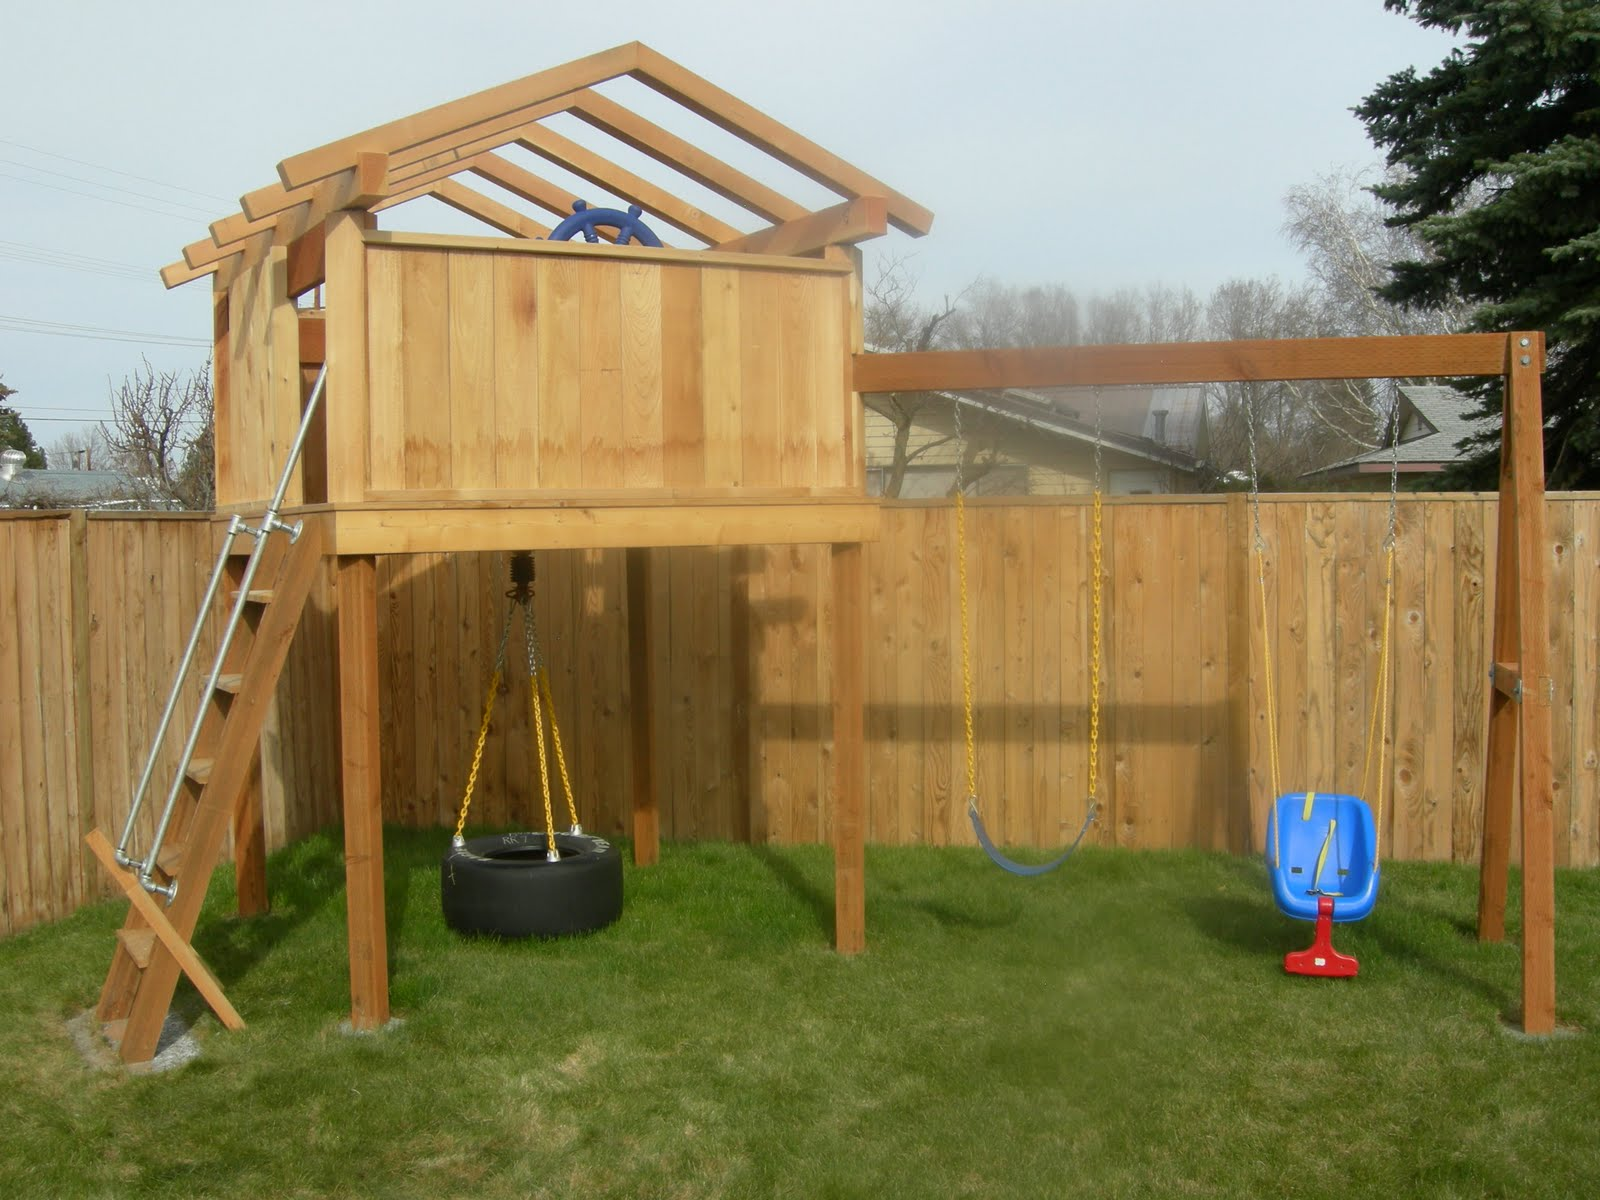 The life of evan evan 39 s tree house for How to make a treehouse step by step